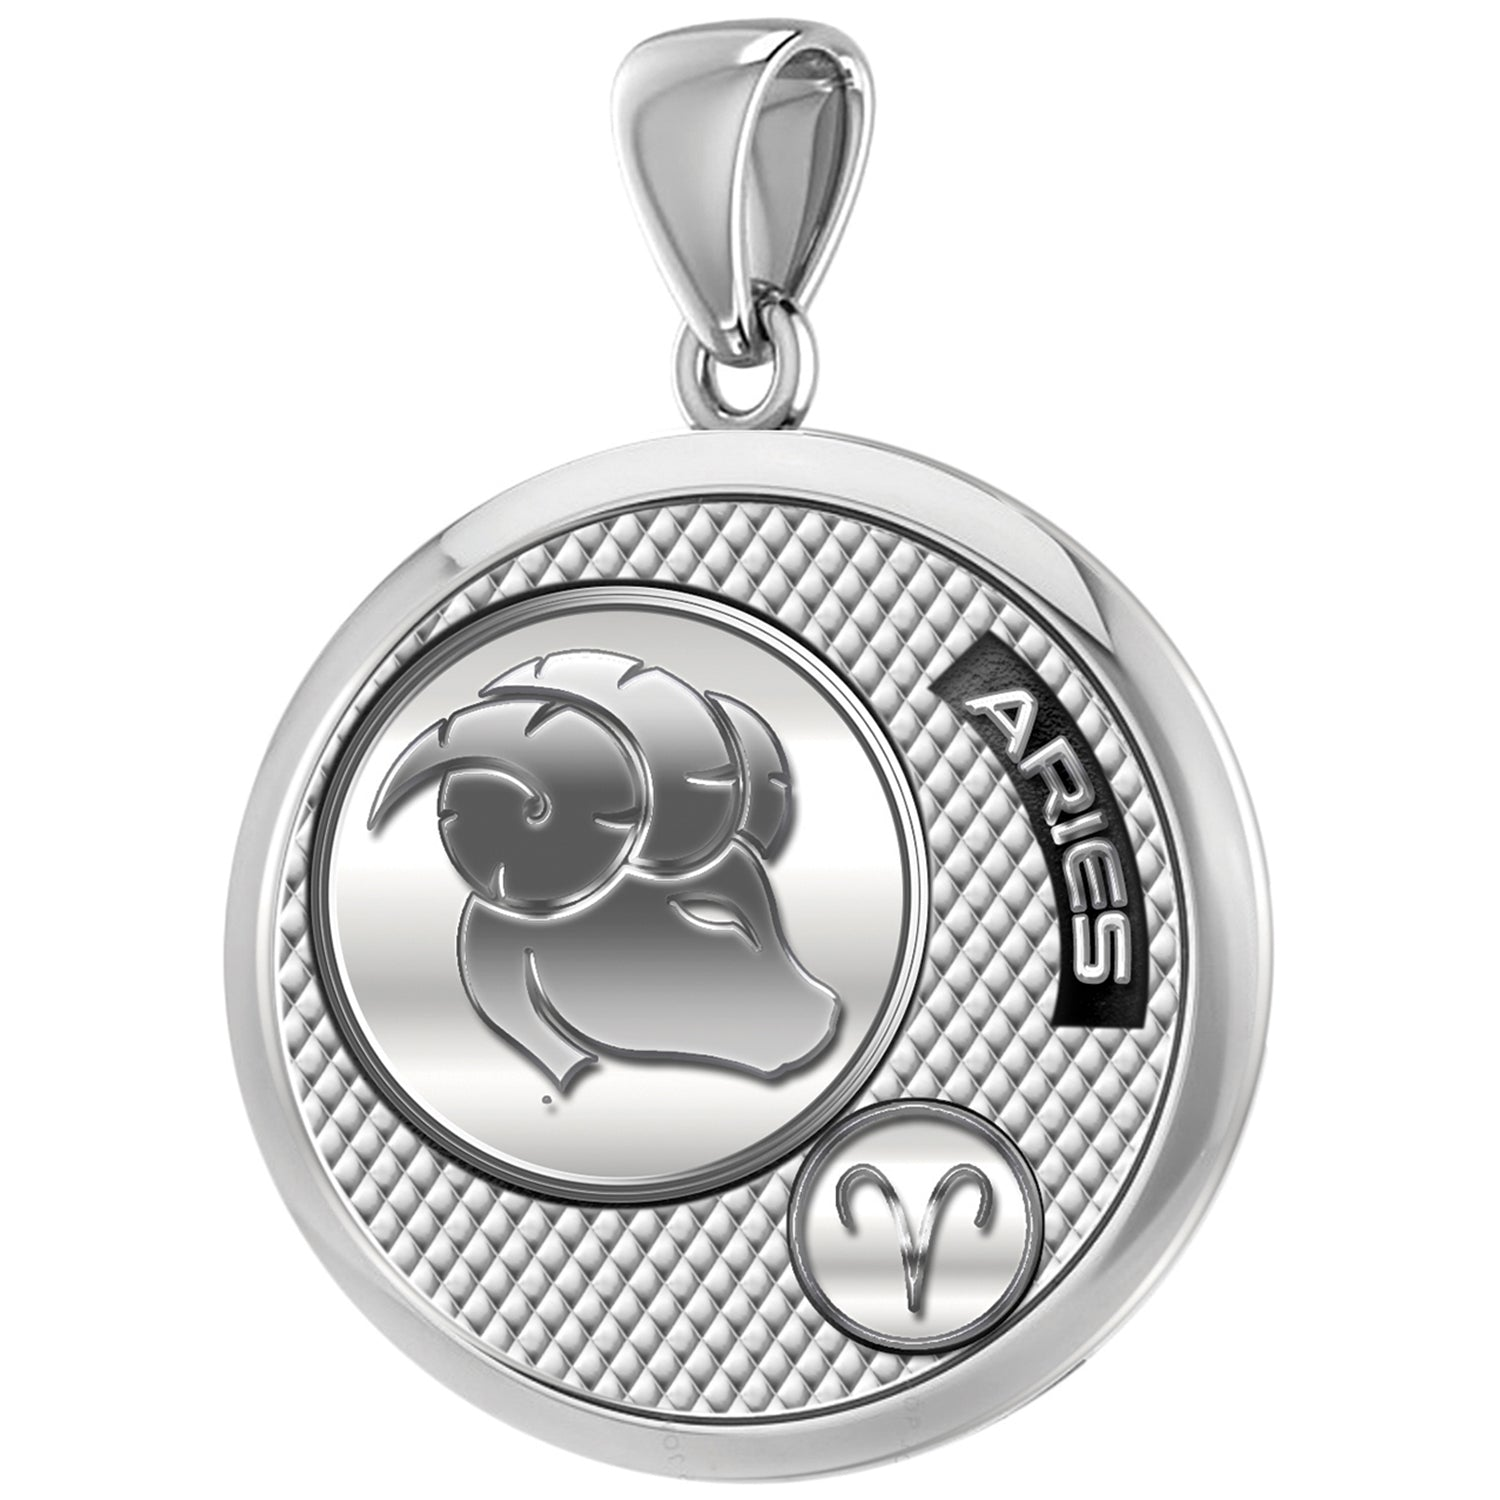 Aries Necklace In Round Shape - Pendant Only